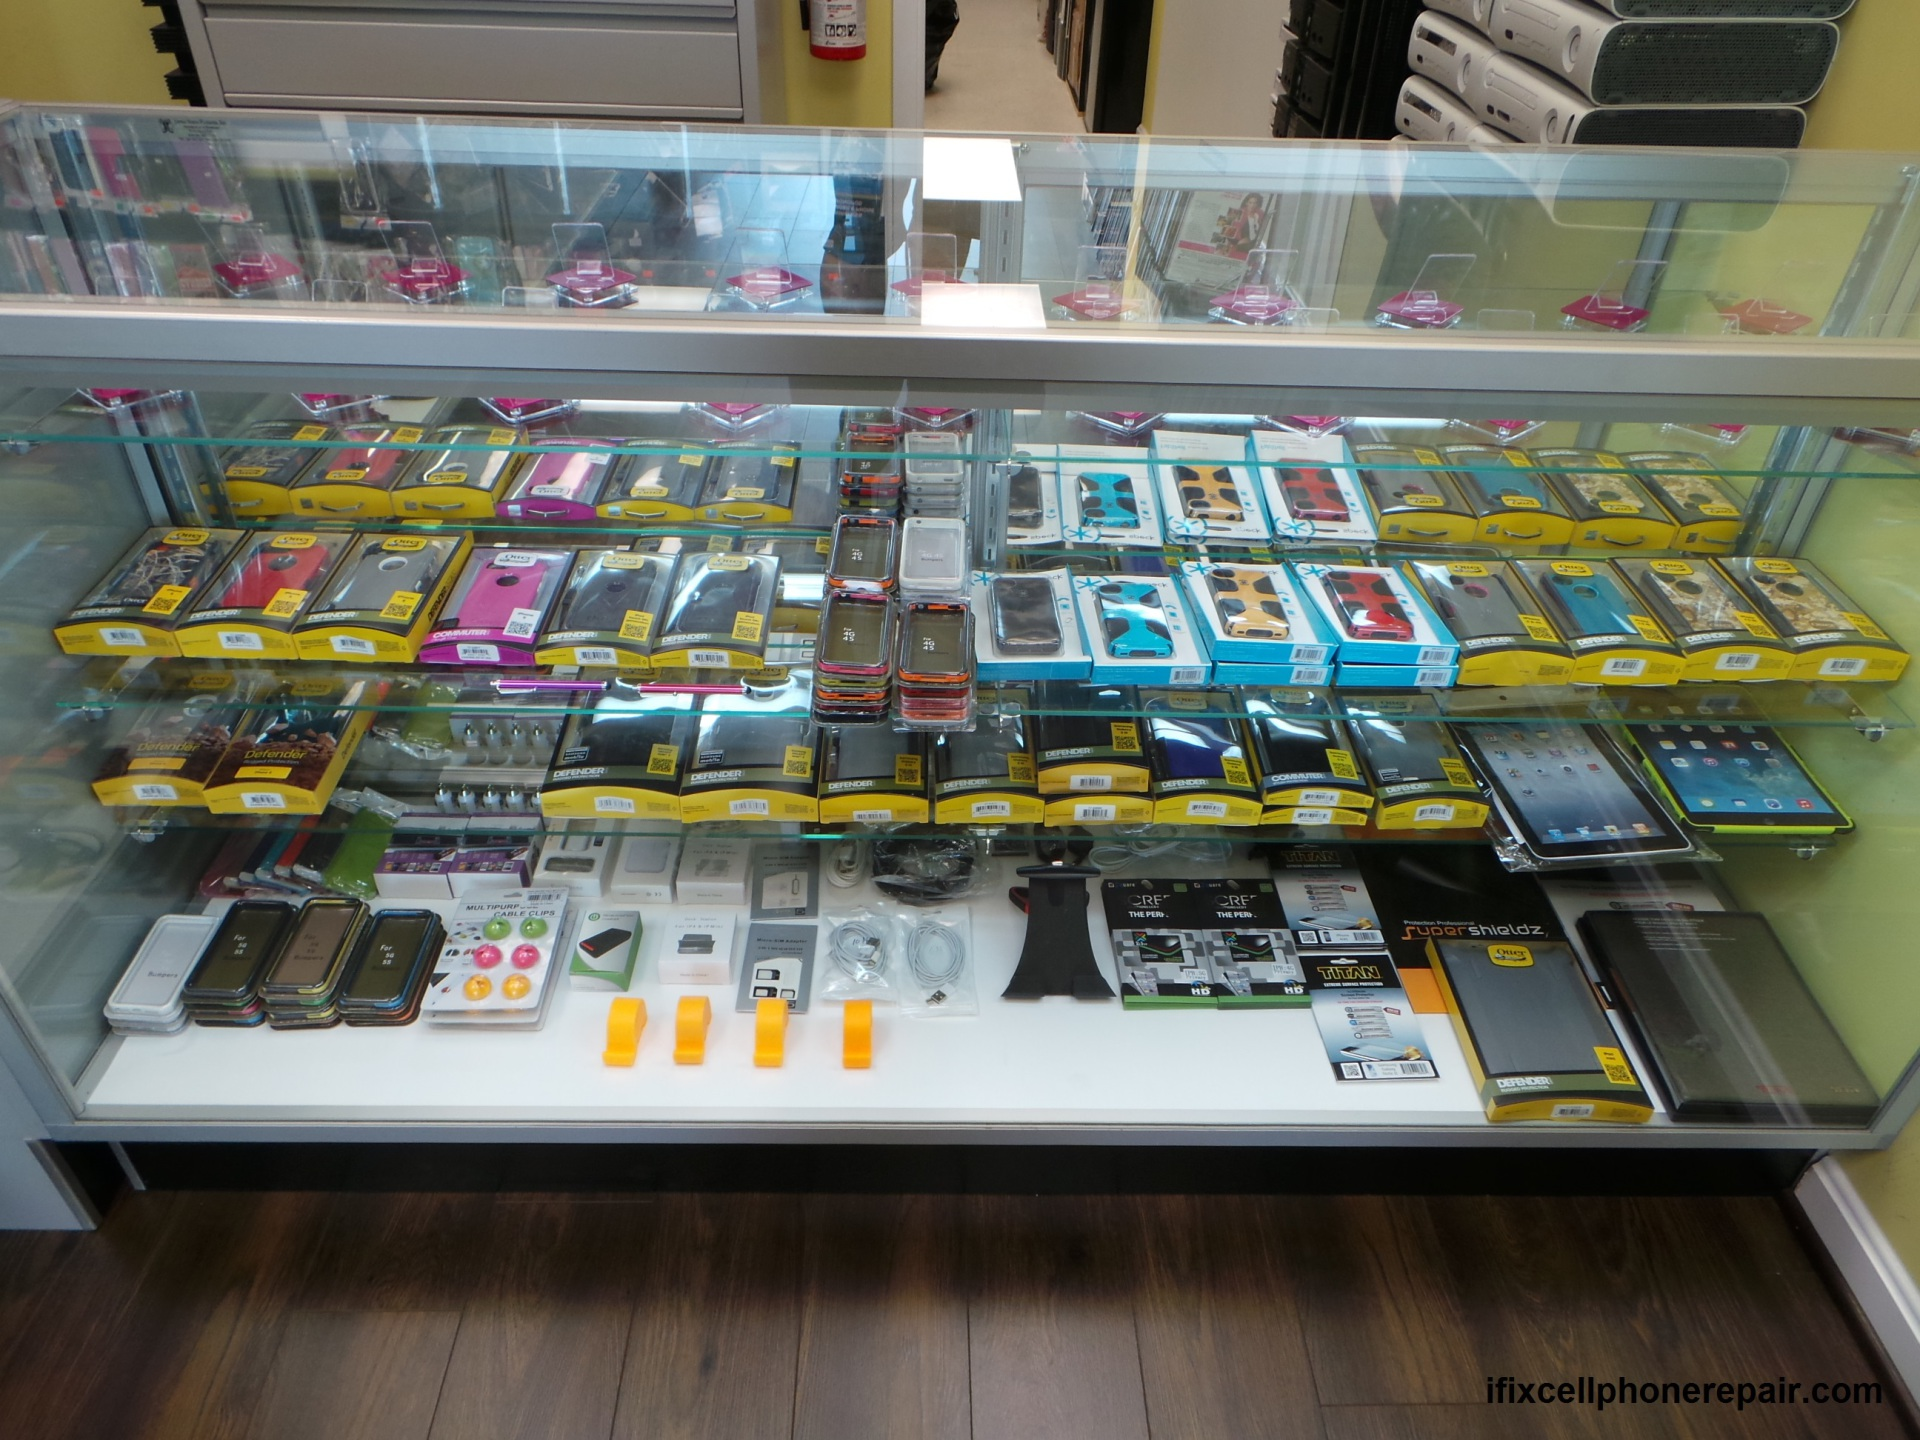 otterbox,speak,clear case,stand,long cable,cell phone battery,self stick,camera,ipad,iphone,galaxy phone